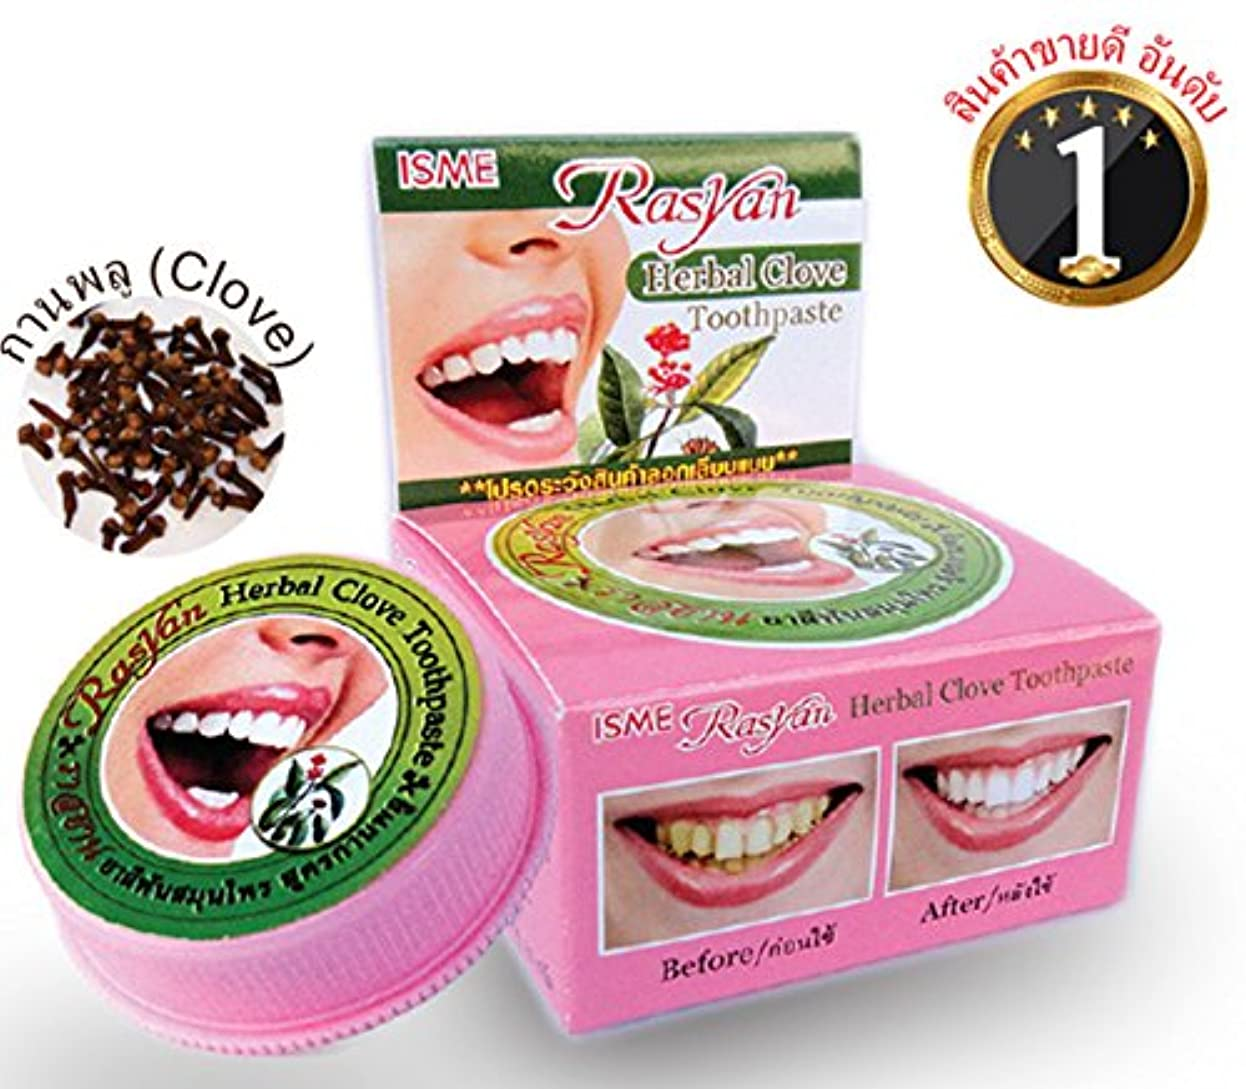 結婚した受付ラッシュ練り歯磨き ハーブ Thai Herbal Rasyan Herbal Clove Toothpaste (5 Gram Size) 2 Pcs.